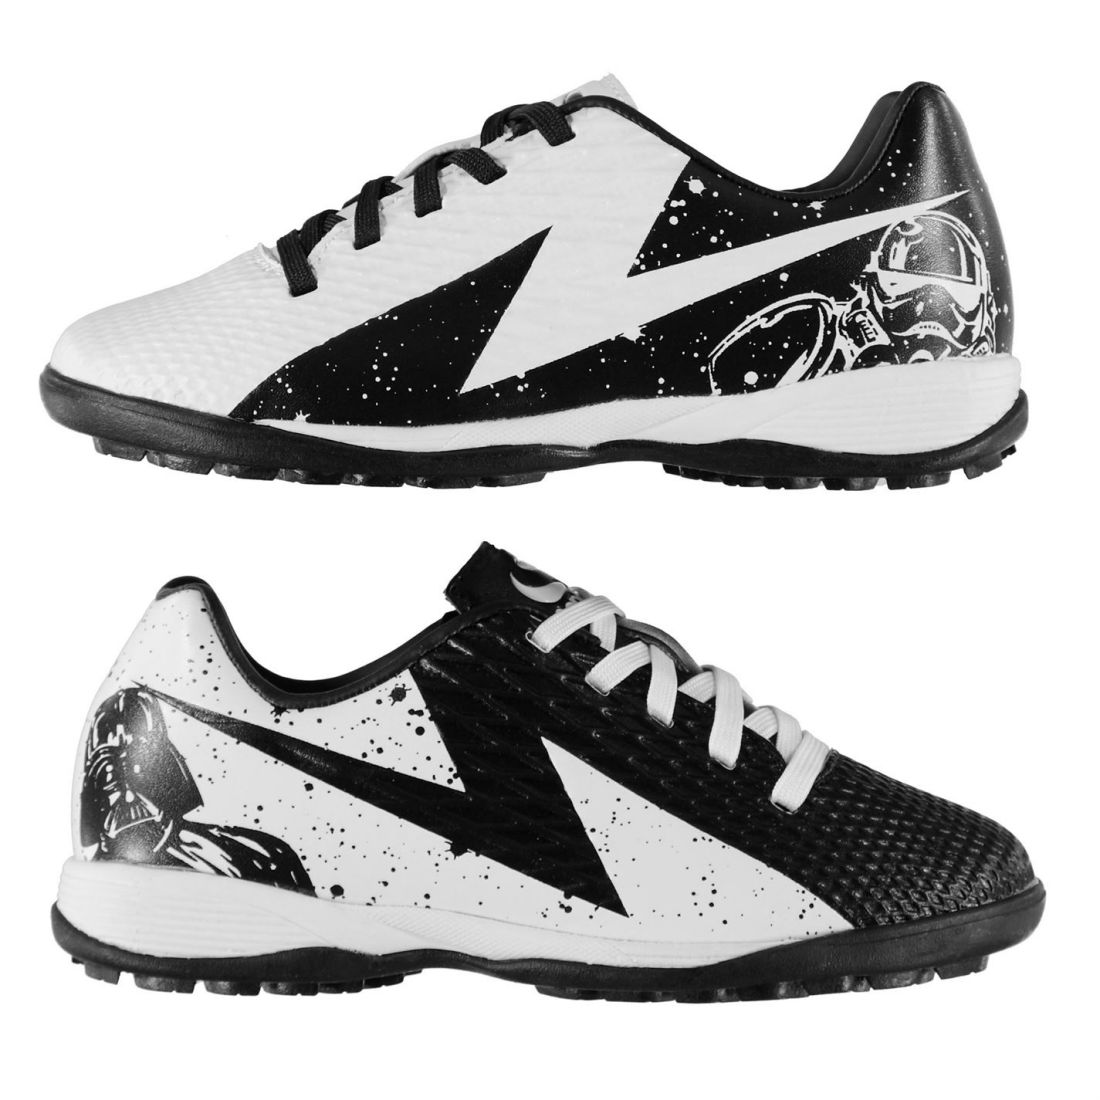 b17a2f9d4 Image is loading Sondico-Blaze-Childrens-Astro-Turf-Sneakers-Football-Boots-